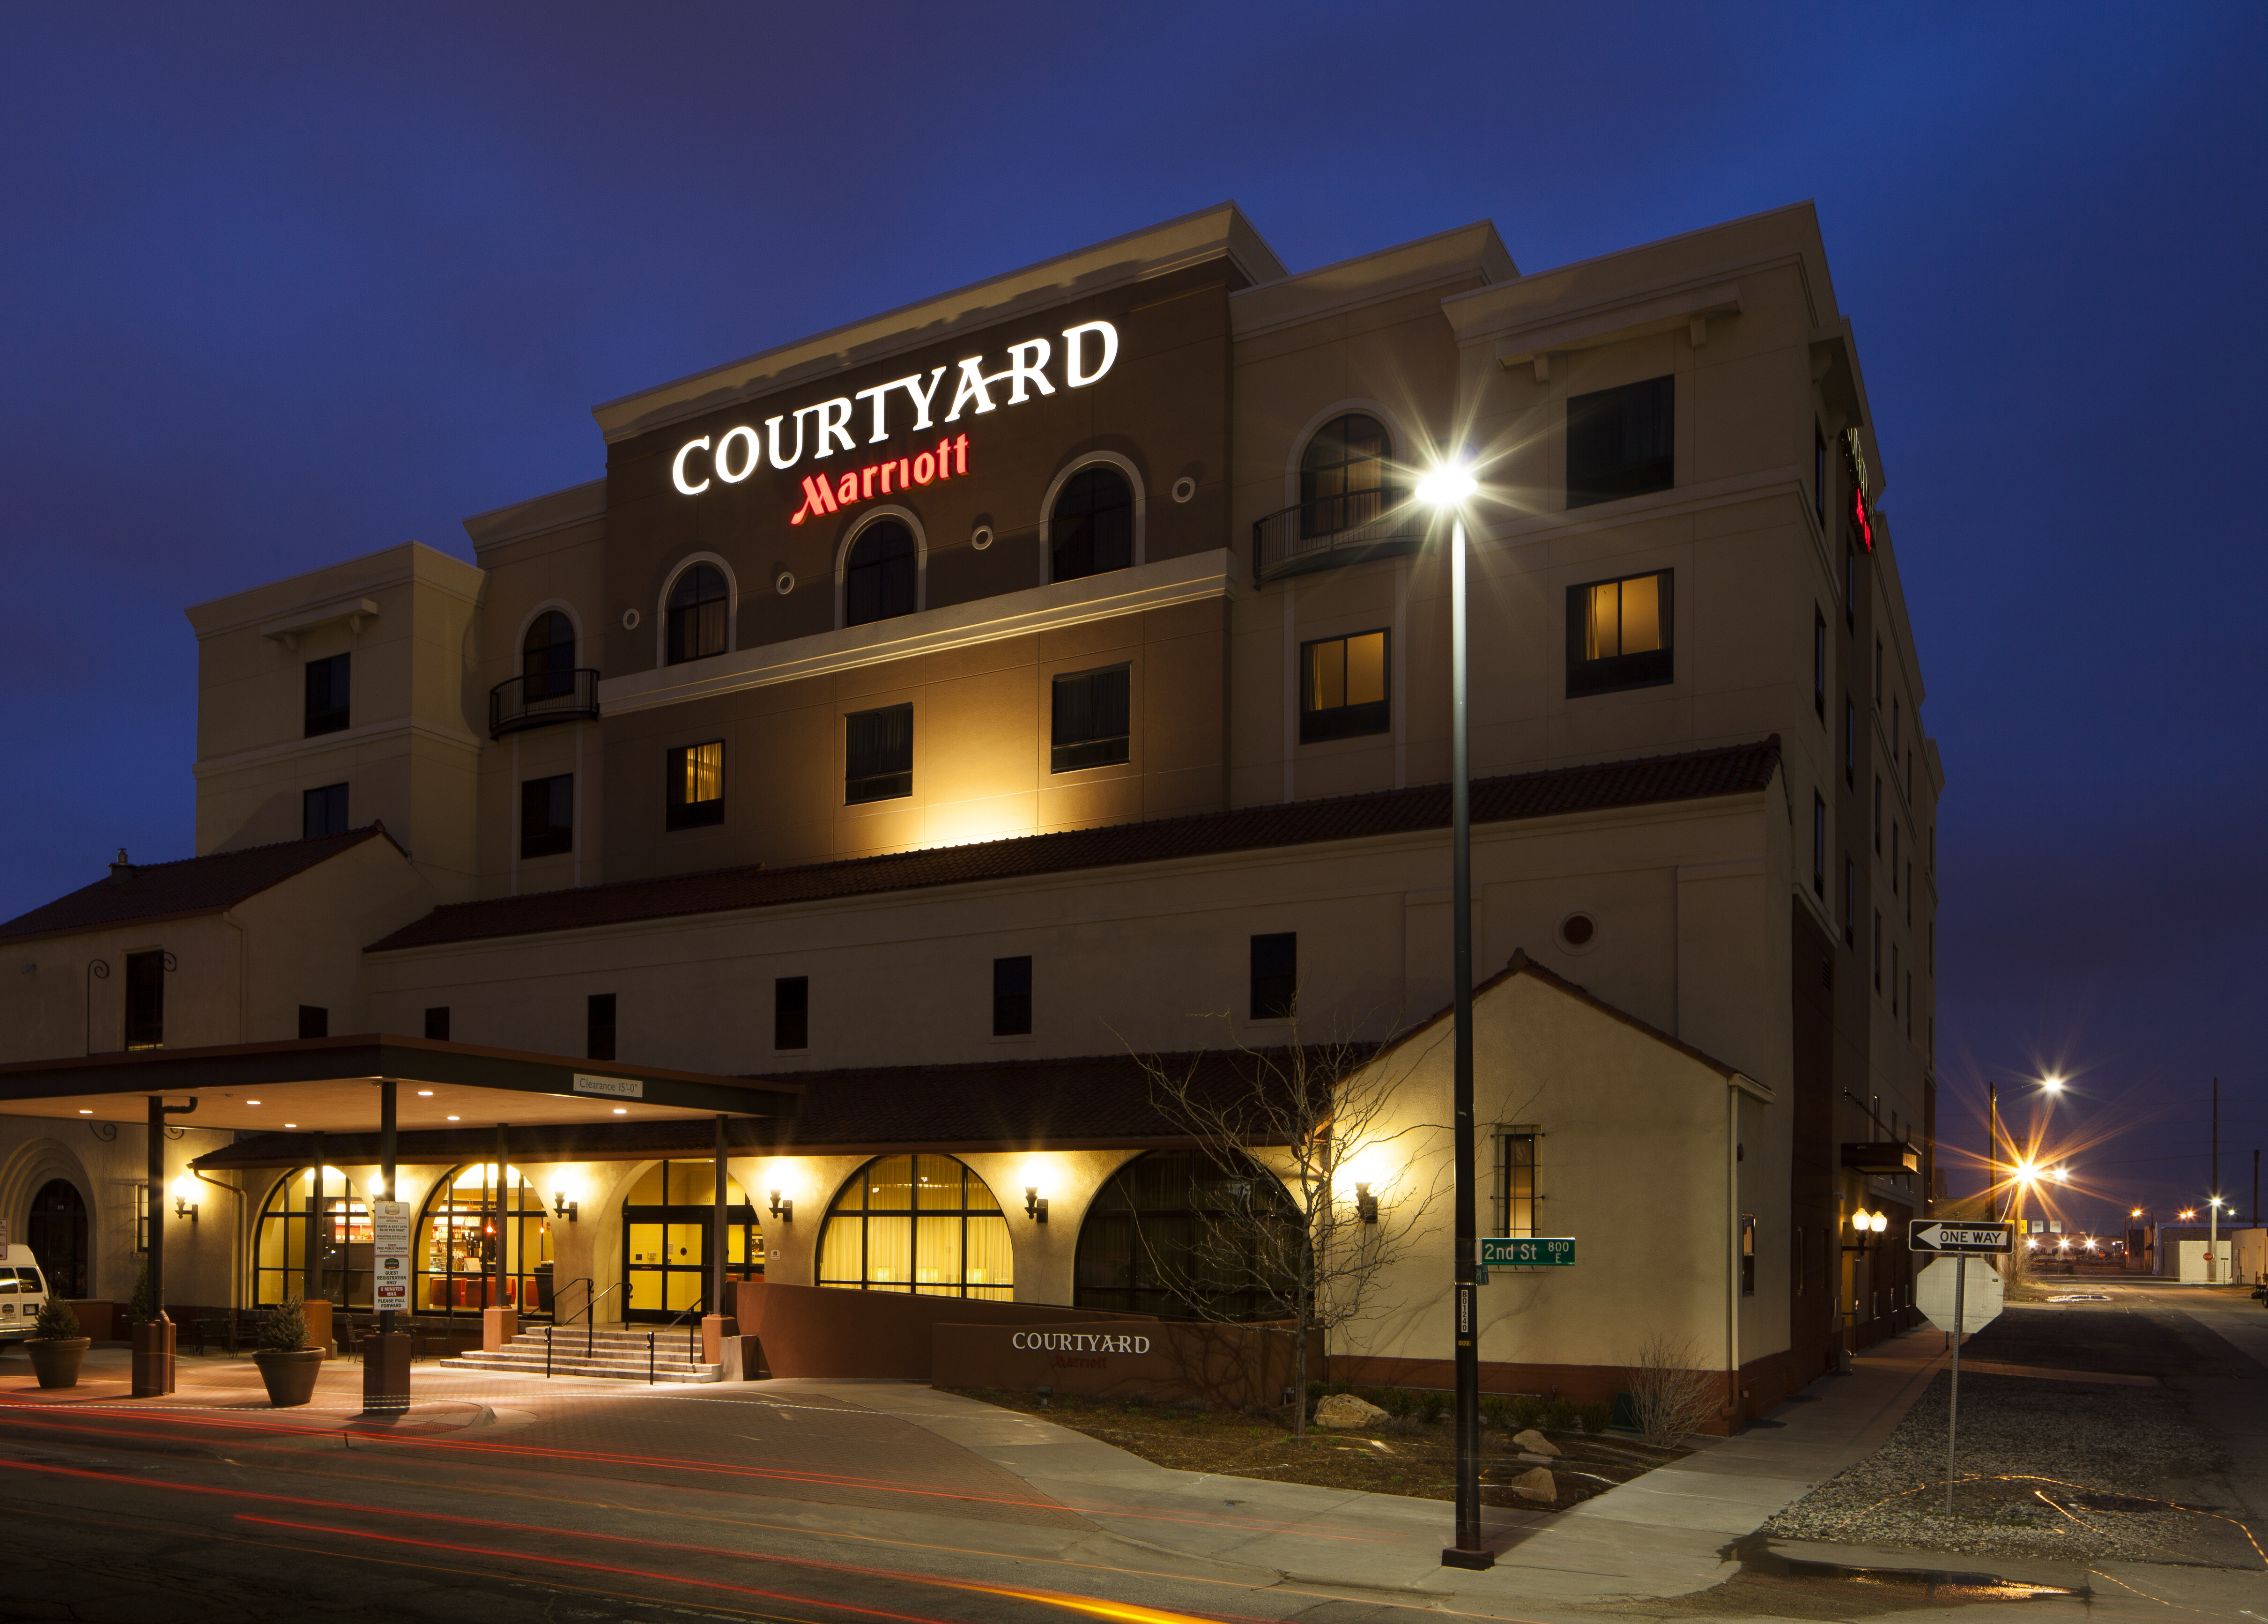 Experience Wichita's First Pure Rooms at the Courtyard Old Town